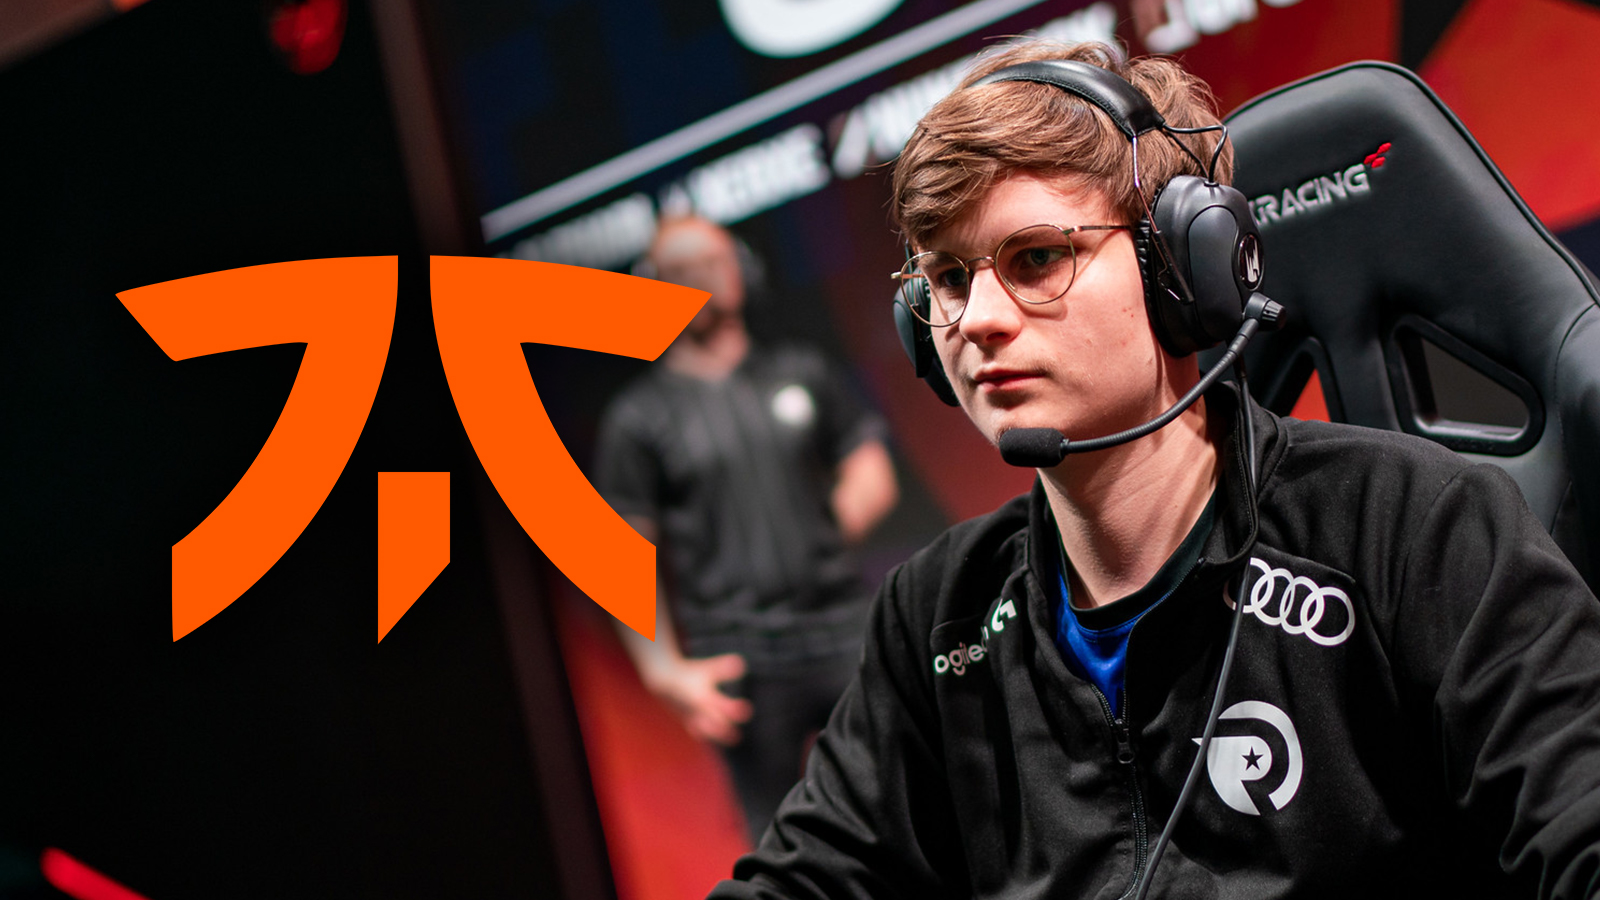 Upset moving to Fnatic for LEC 2021